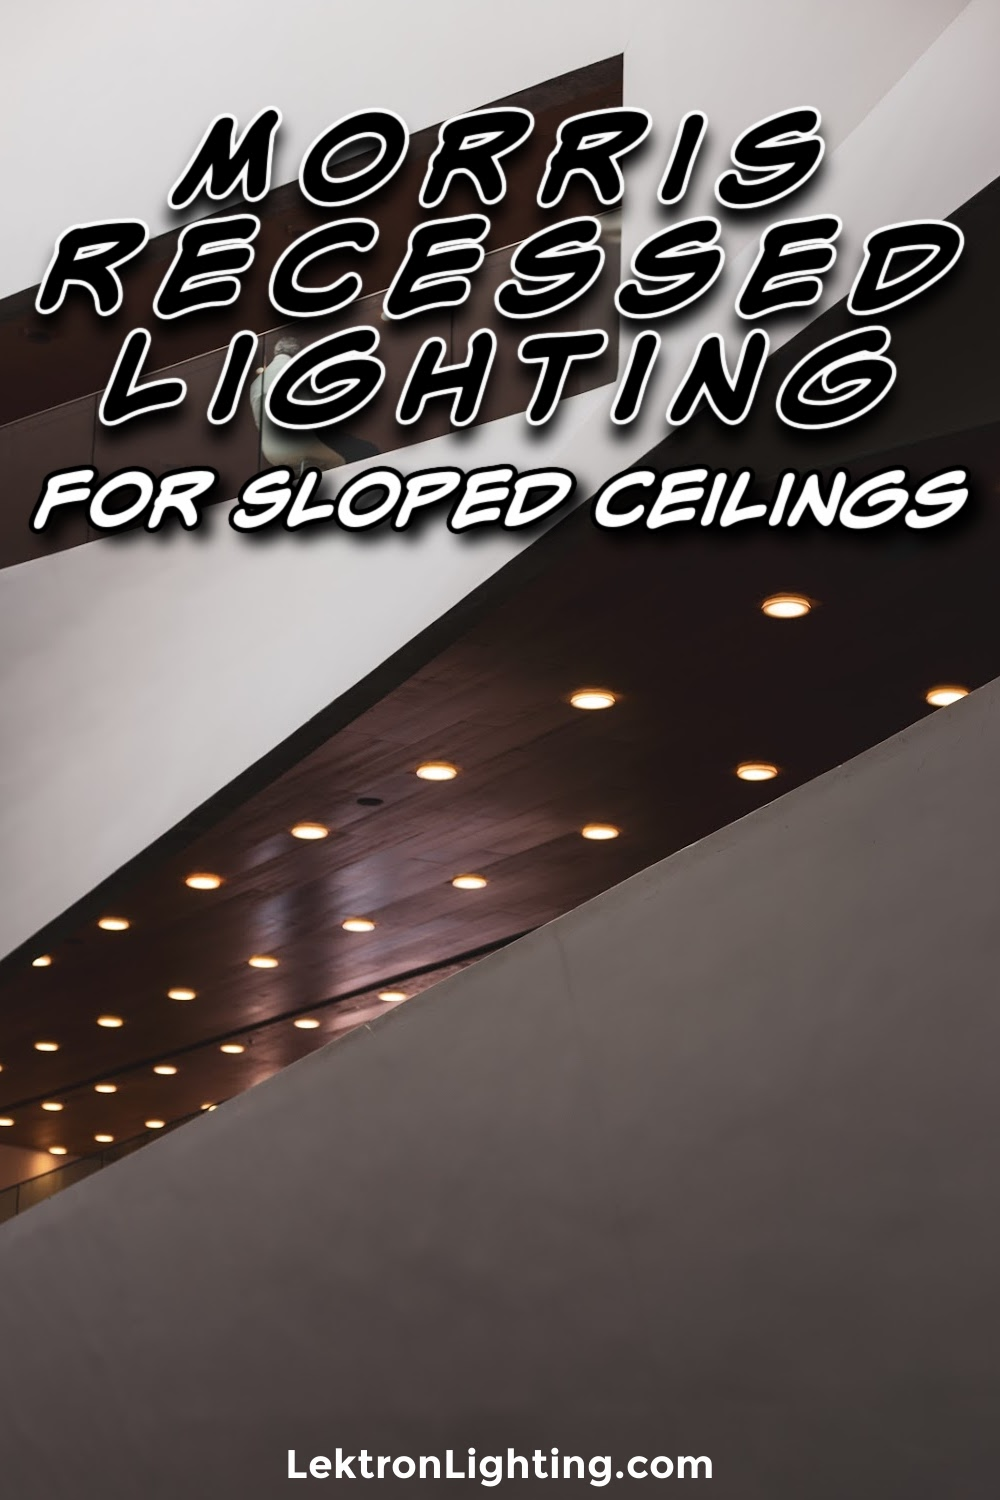 Morris recessed lighting for sloped ceilings can be utilized in specific ways that make them a better option for many situations.